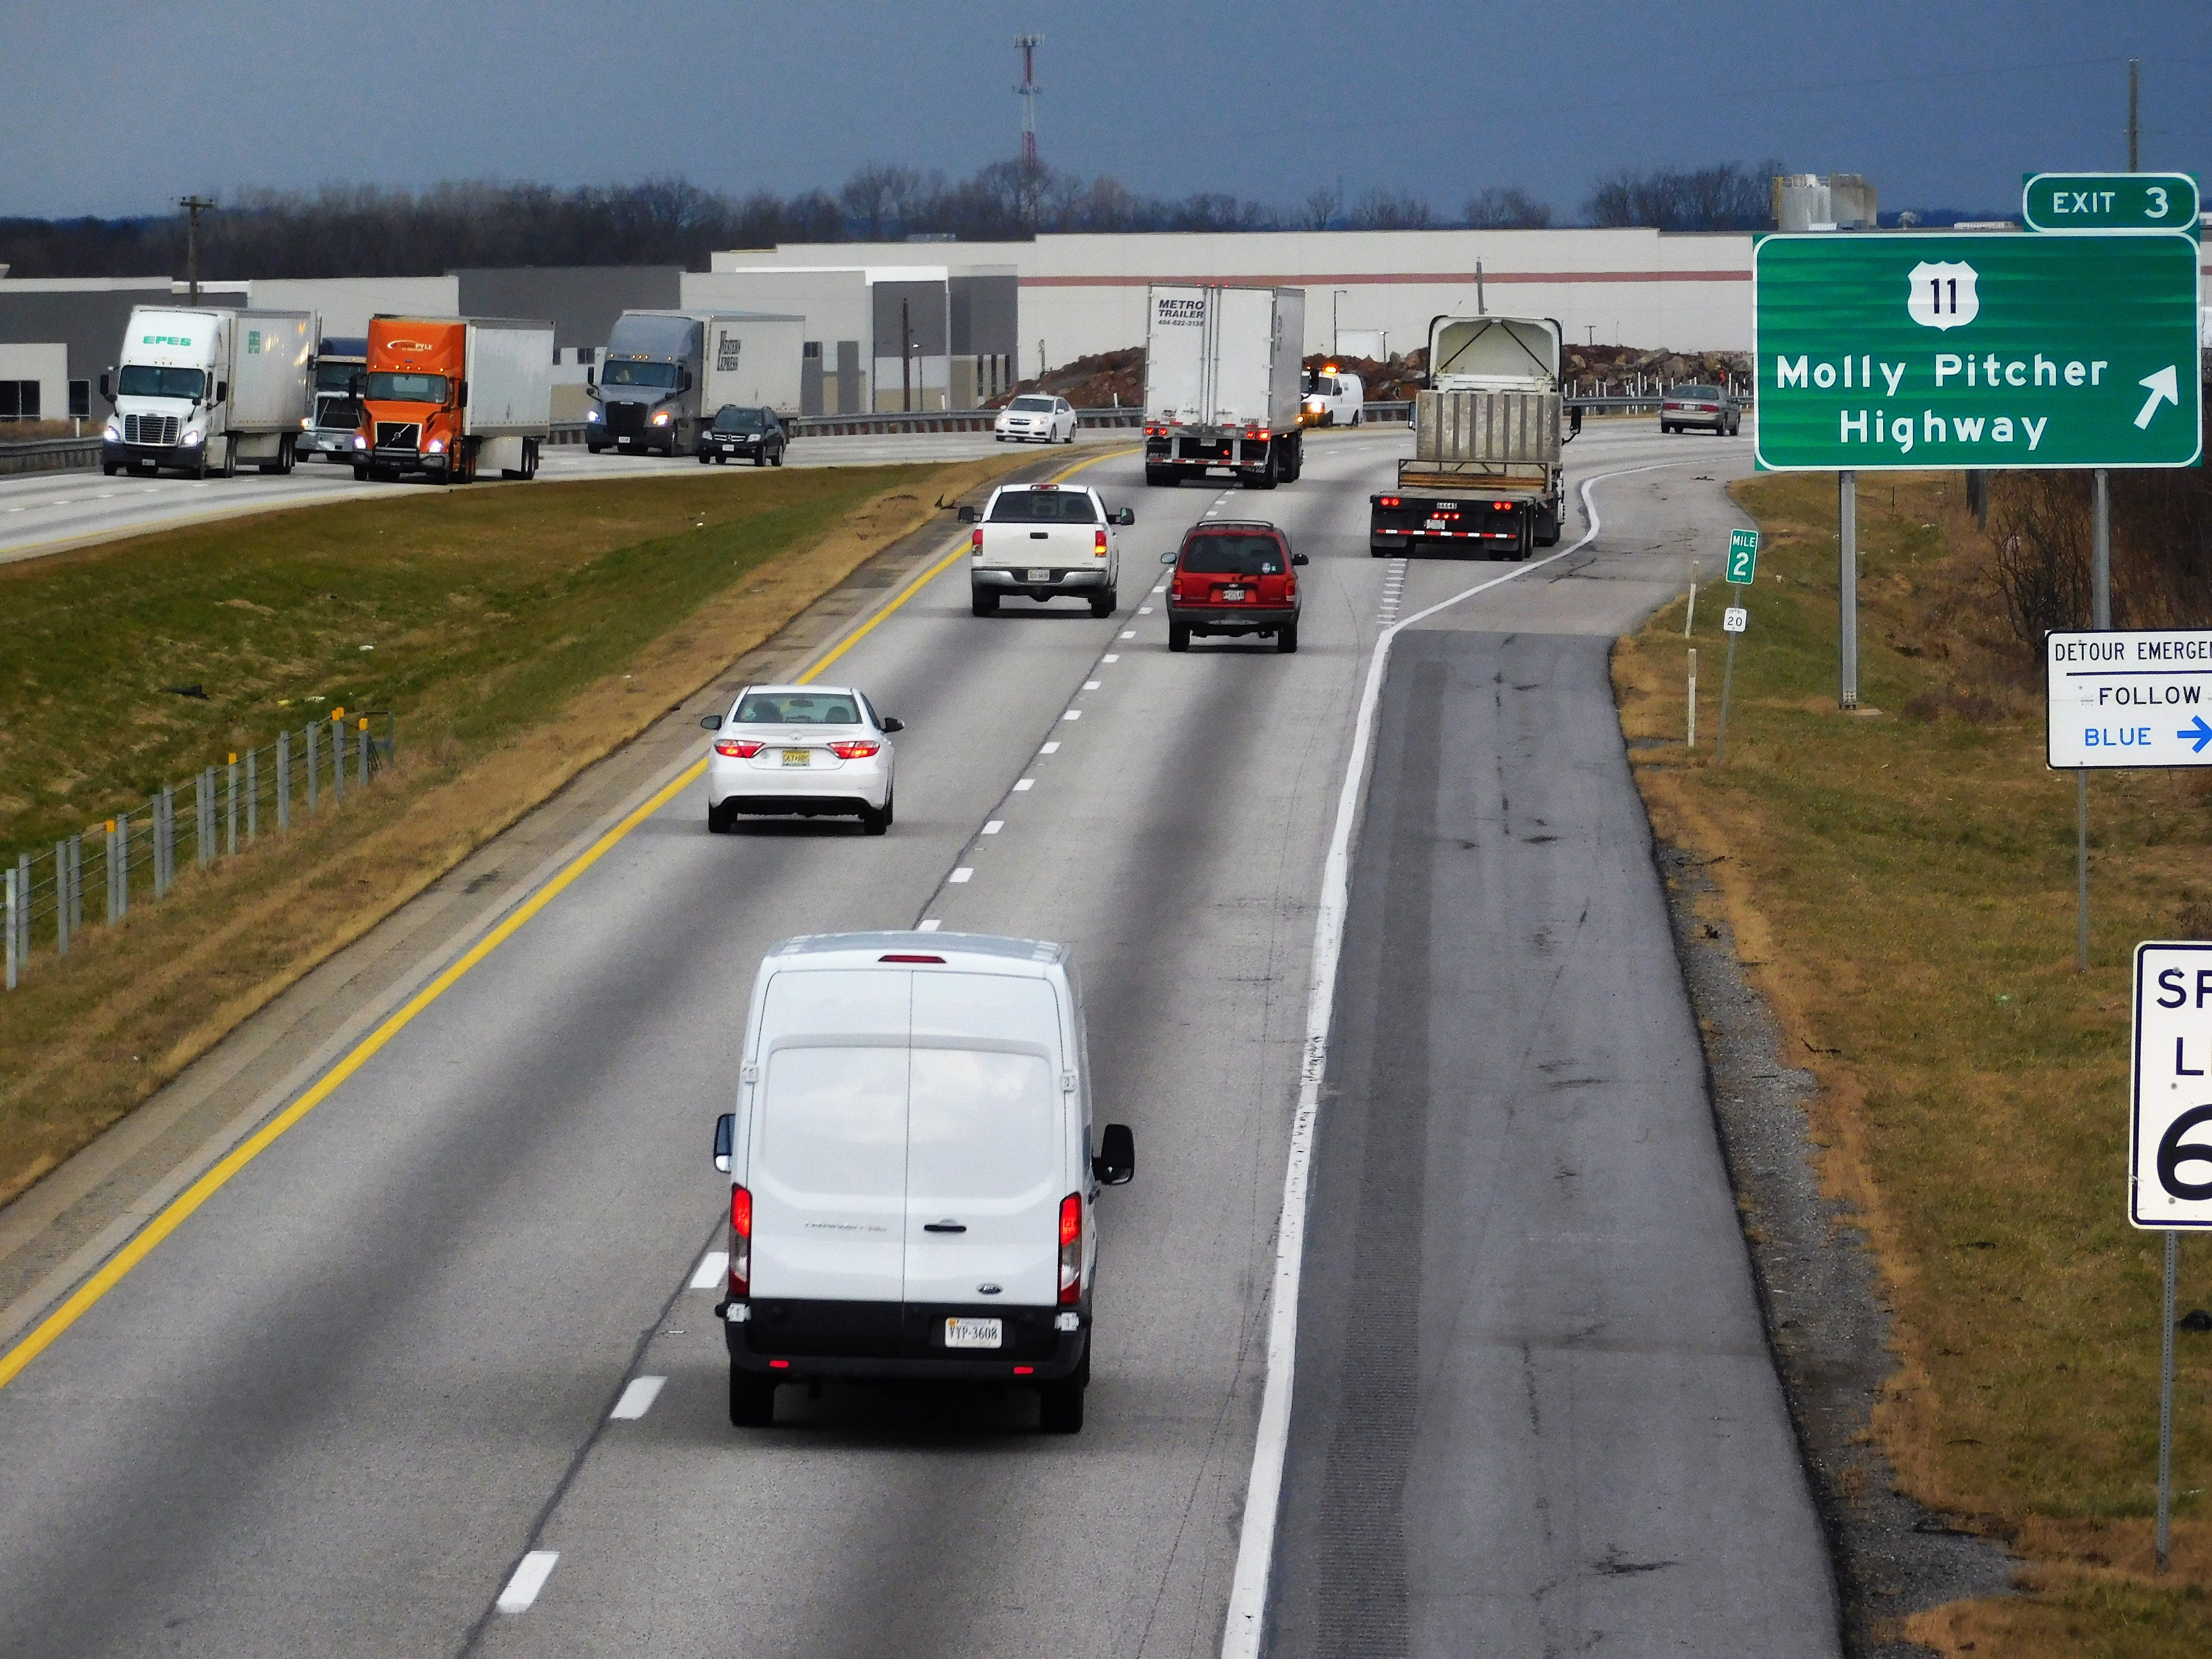 Widening I-81 in Pennsylvania: Plan shows worth, but dollars